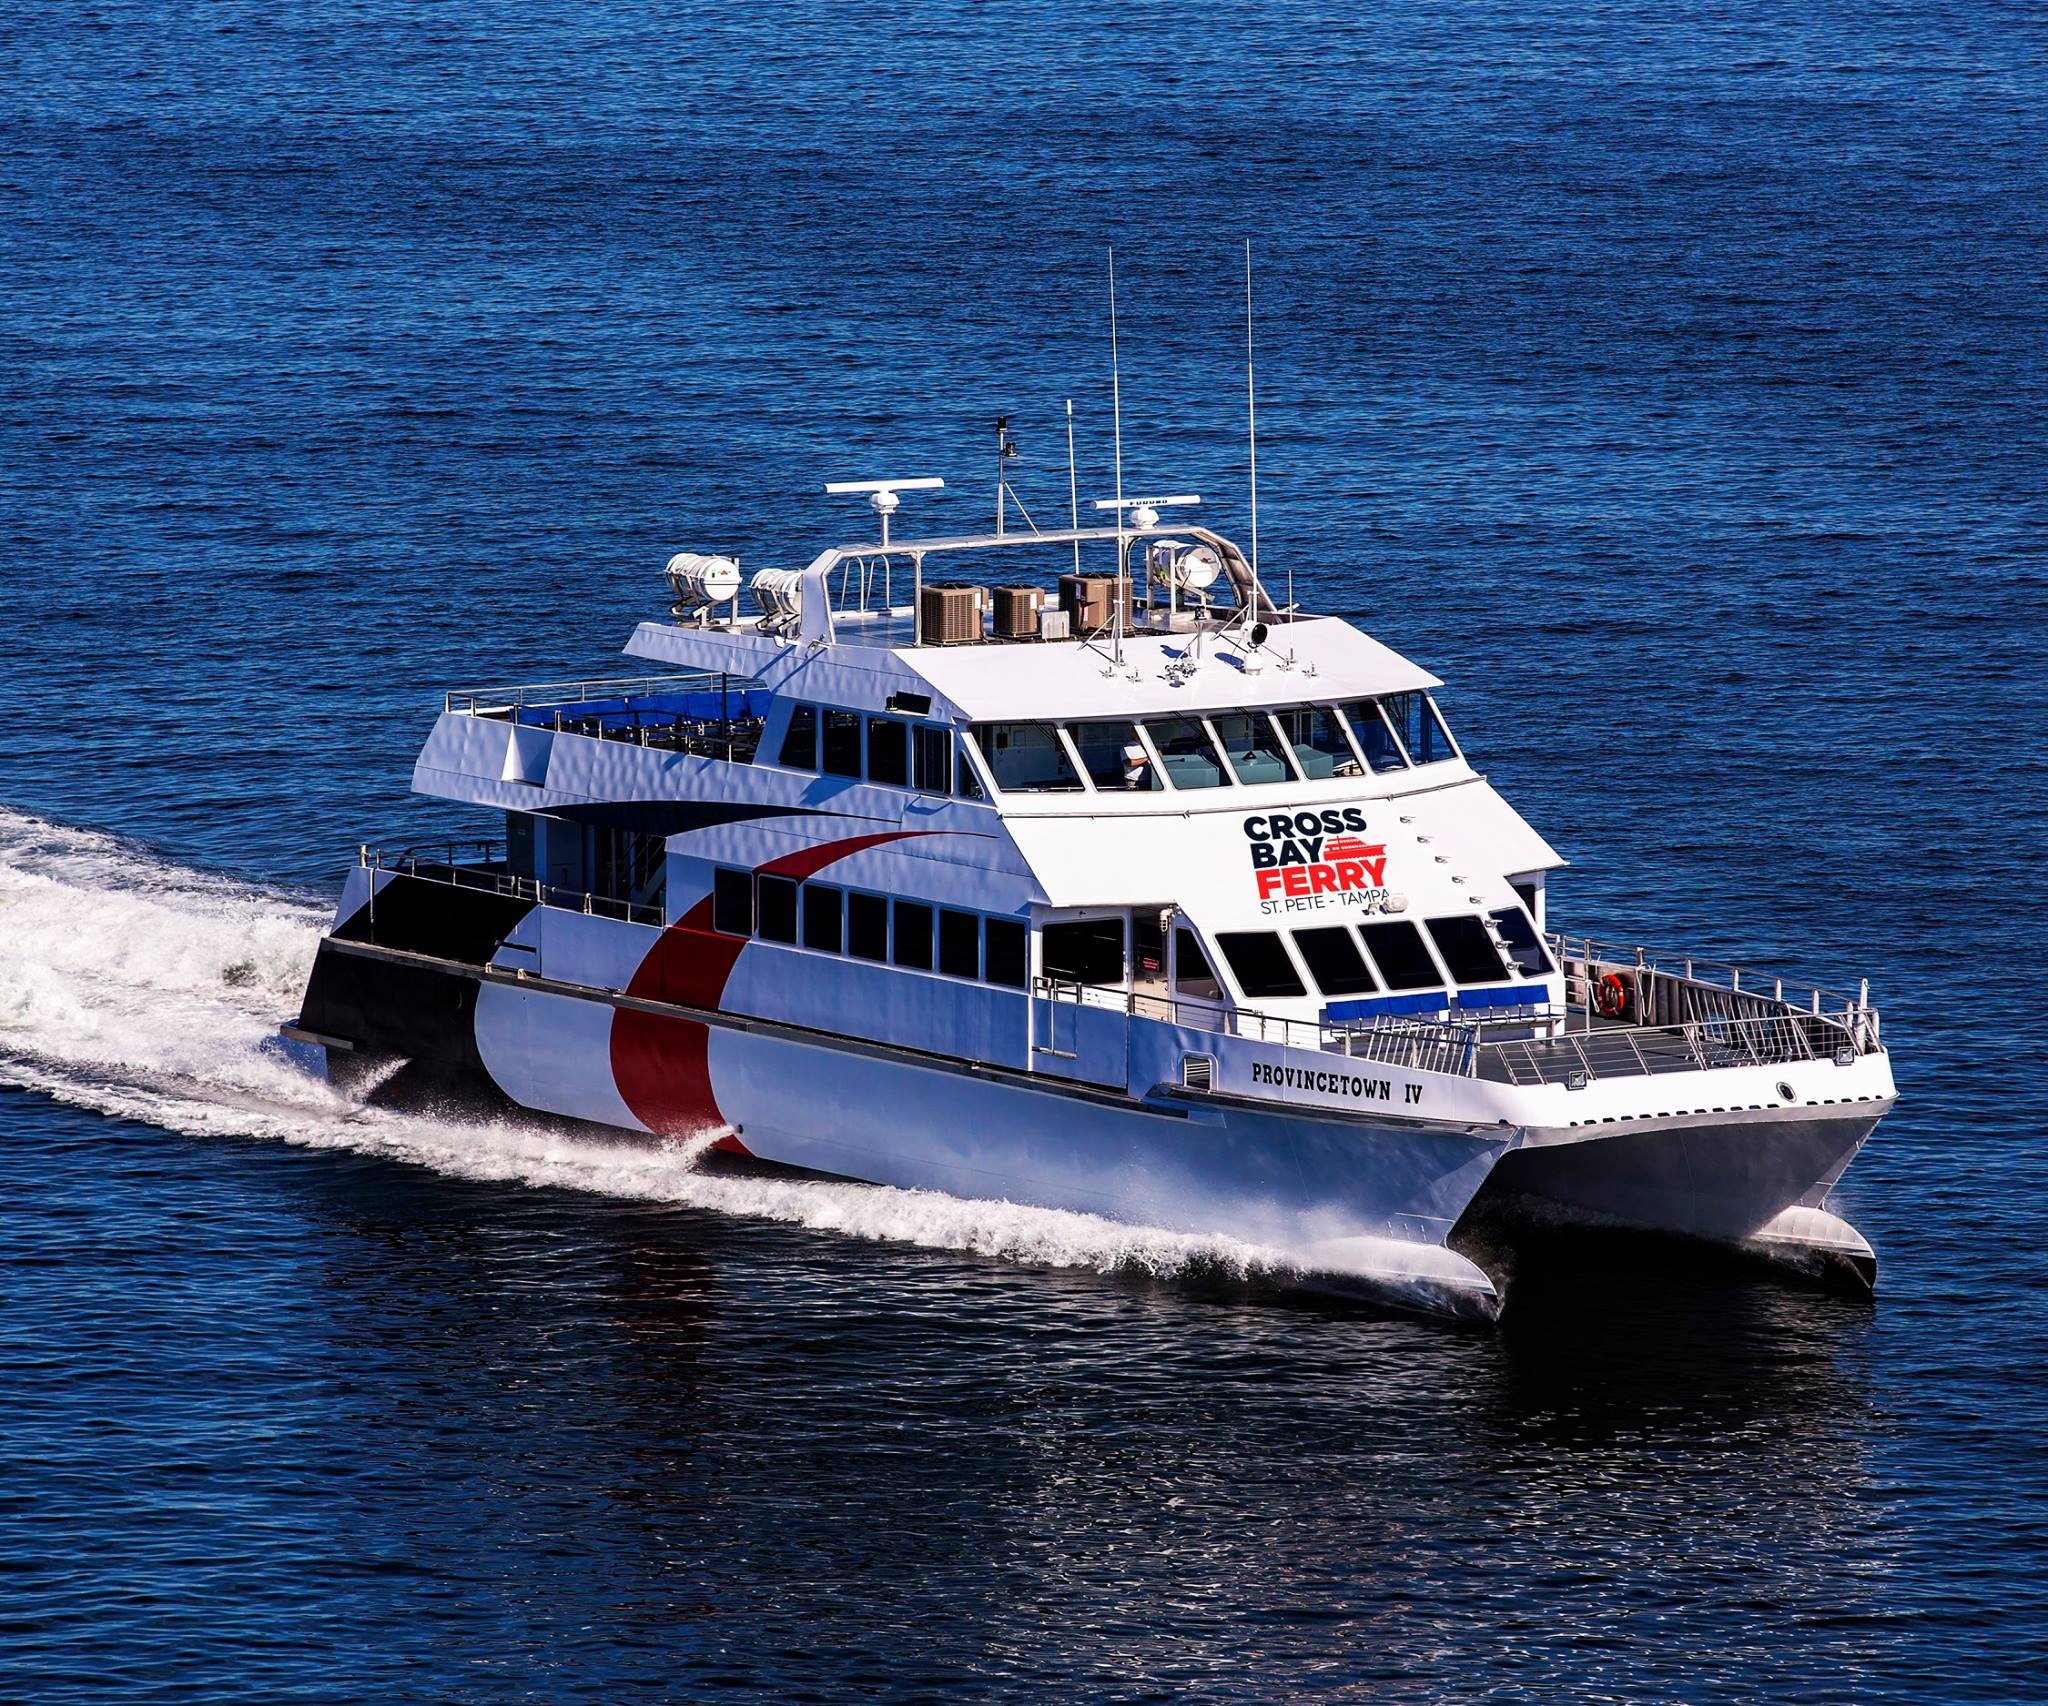 The Cross Bay Ferry recently returned after a successful debut in 2016.